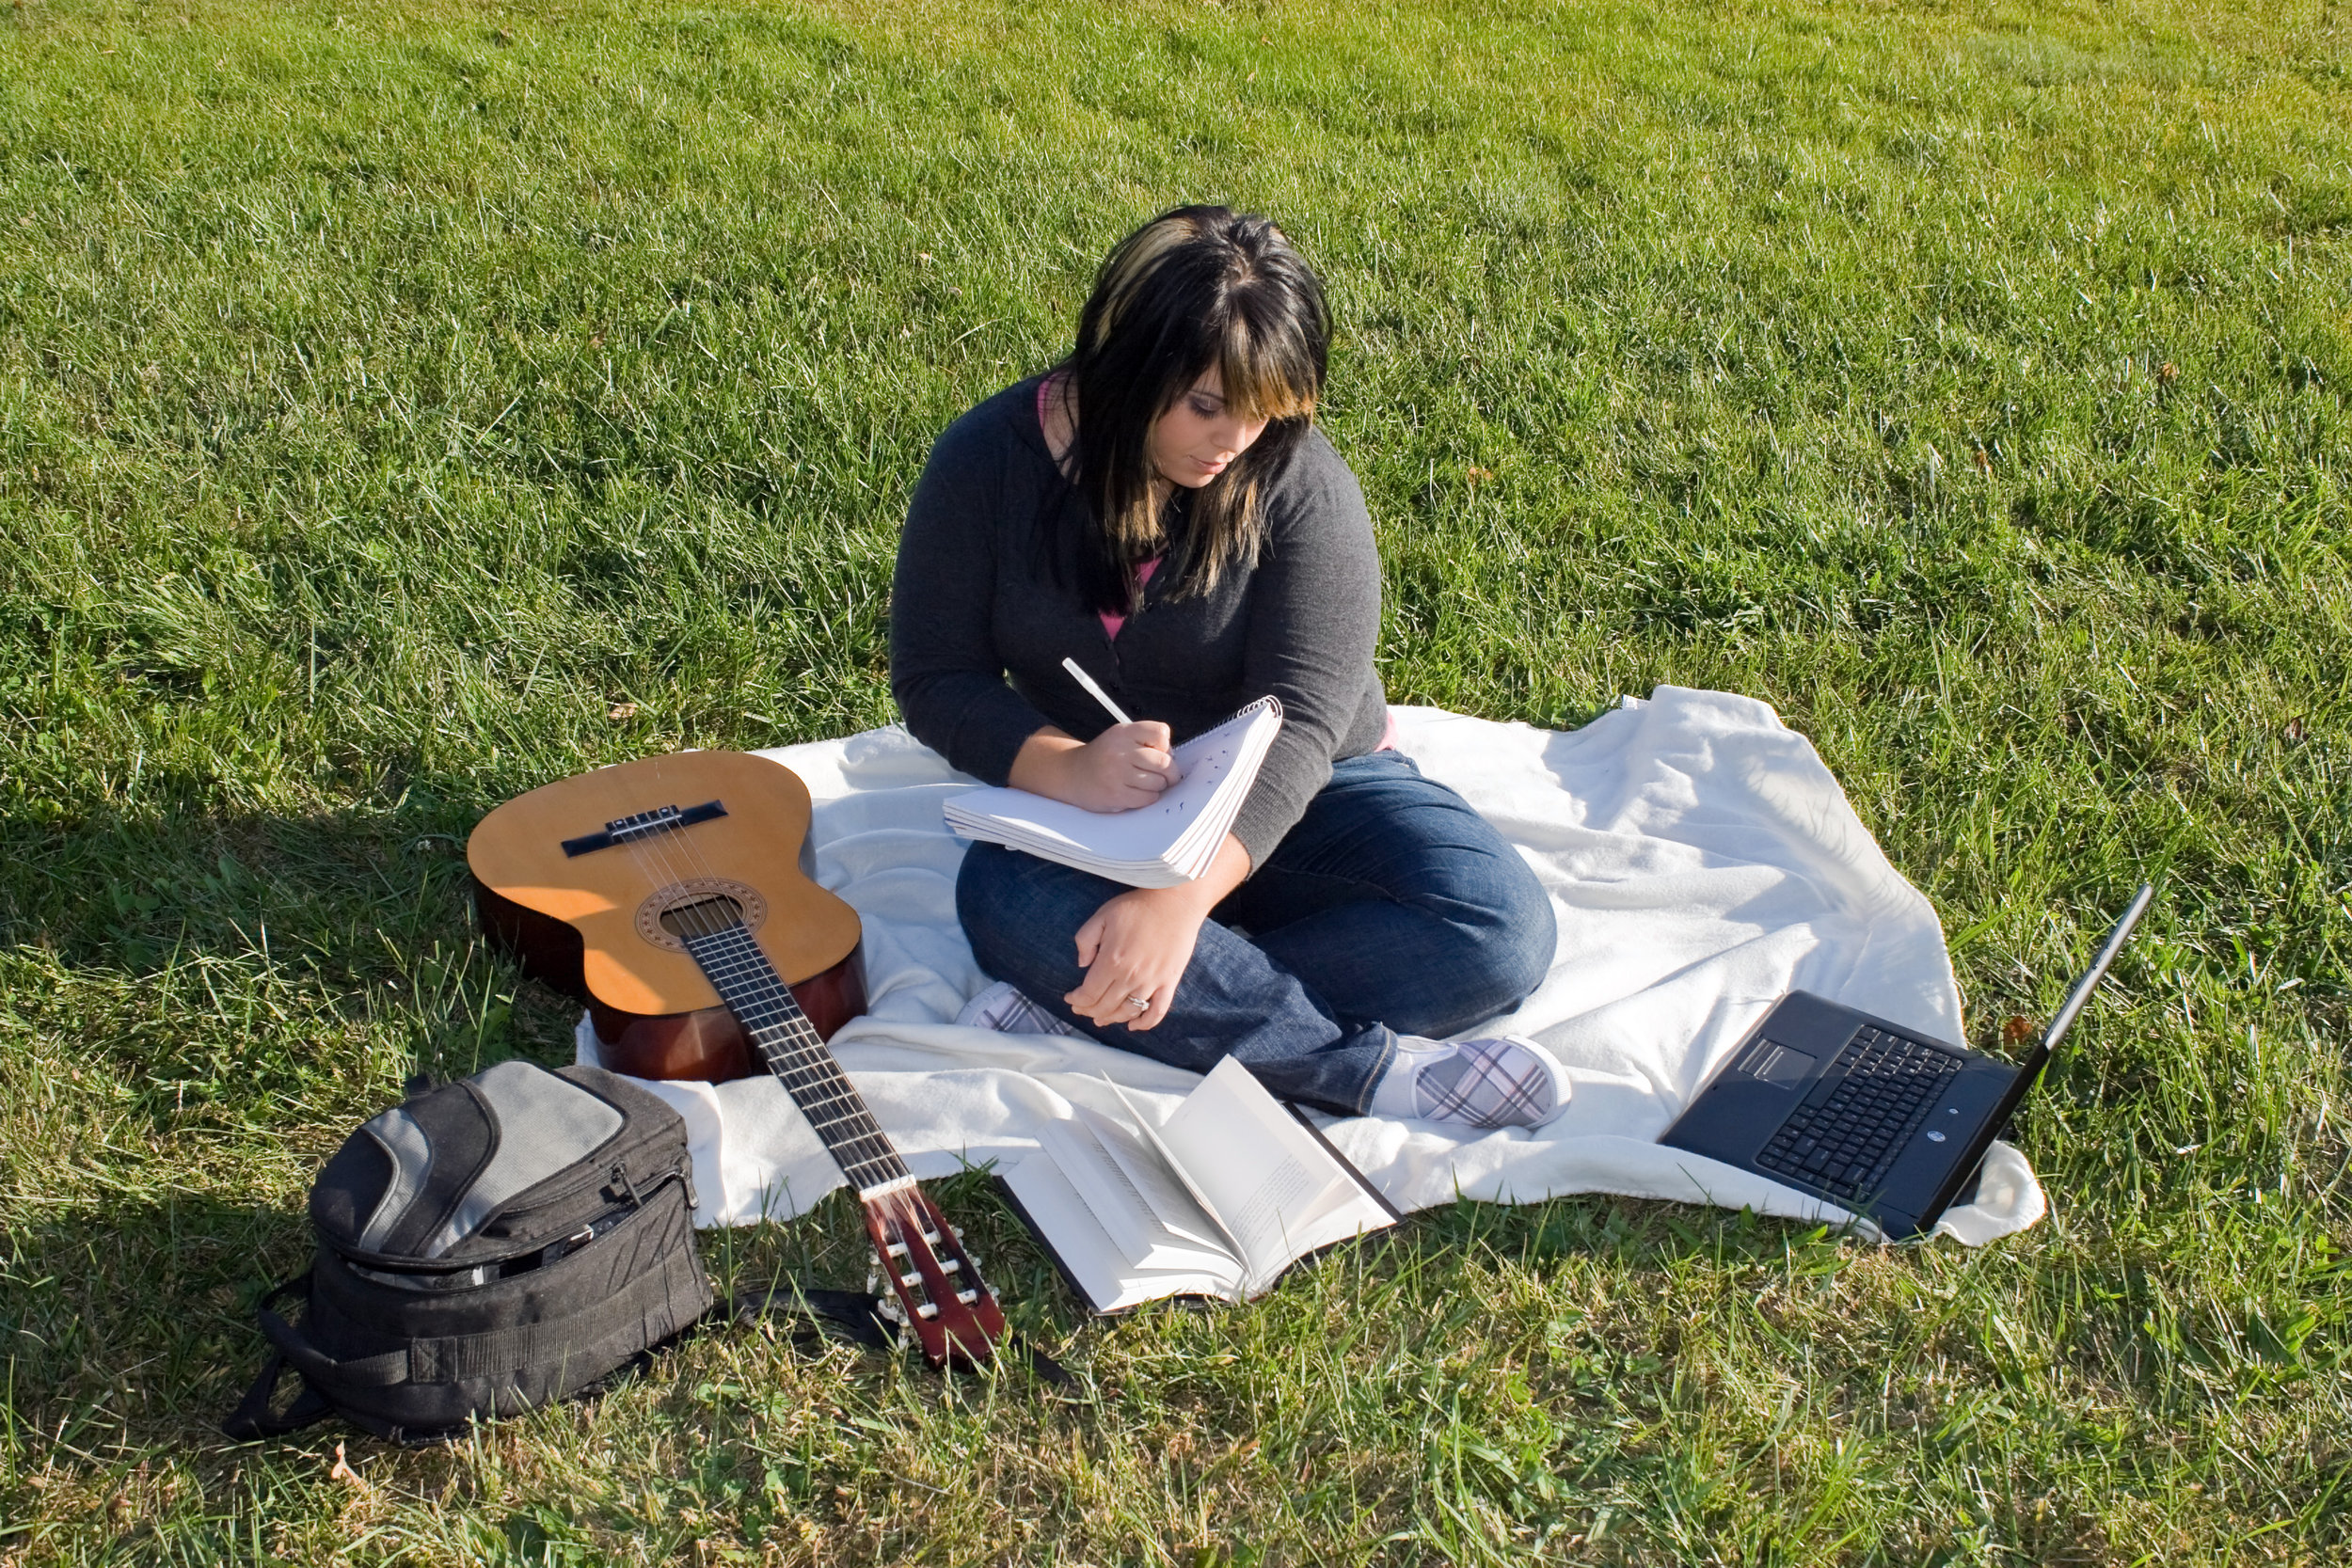 a-young-female-singer-or-song-writer-with-her-guitar-and-computer-outdoors-in-the-grass_rK8gpFFABj.jpg